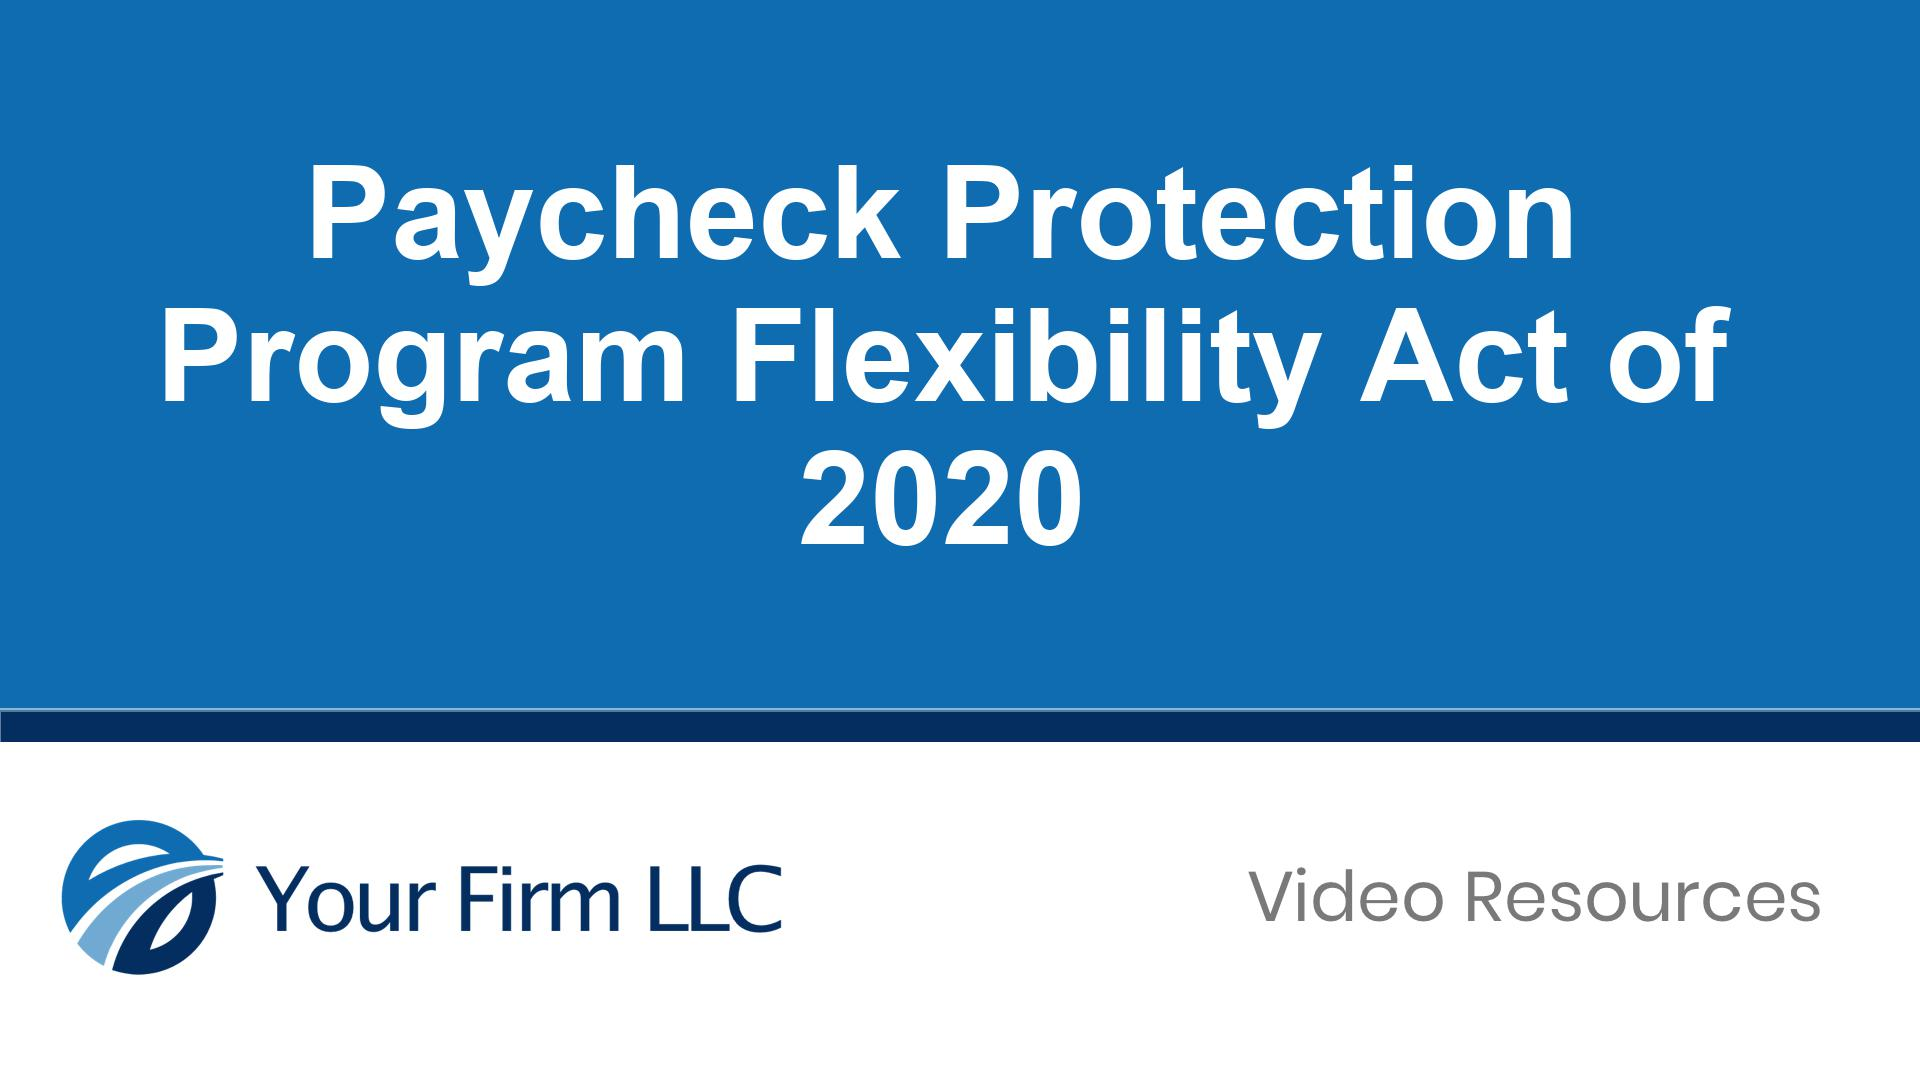 Paycheck Protection Program Flexibility Act of 2020